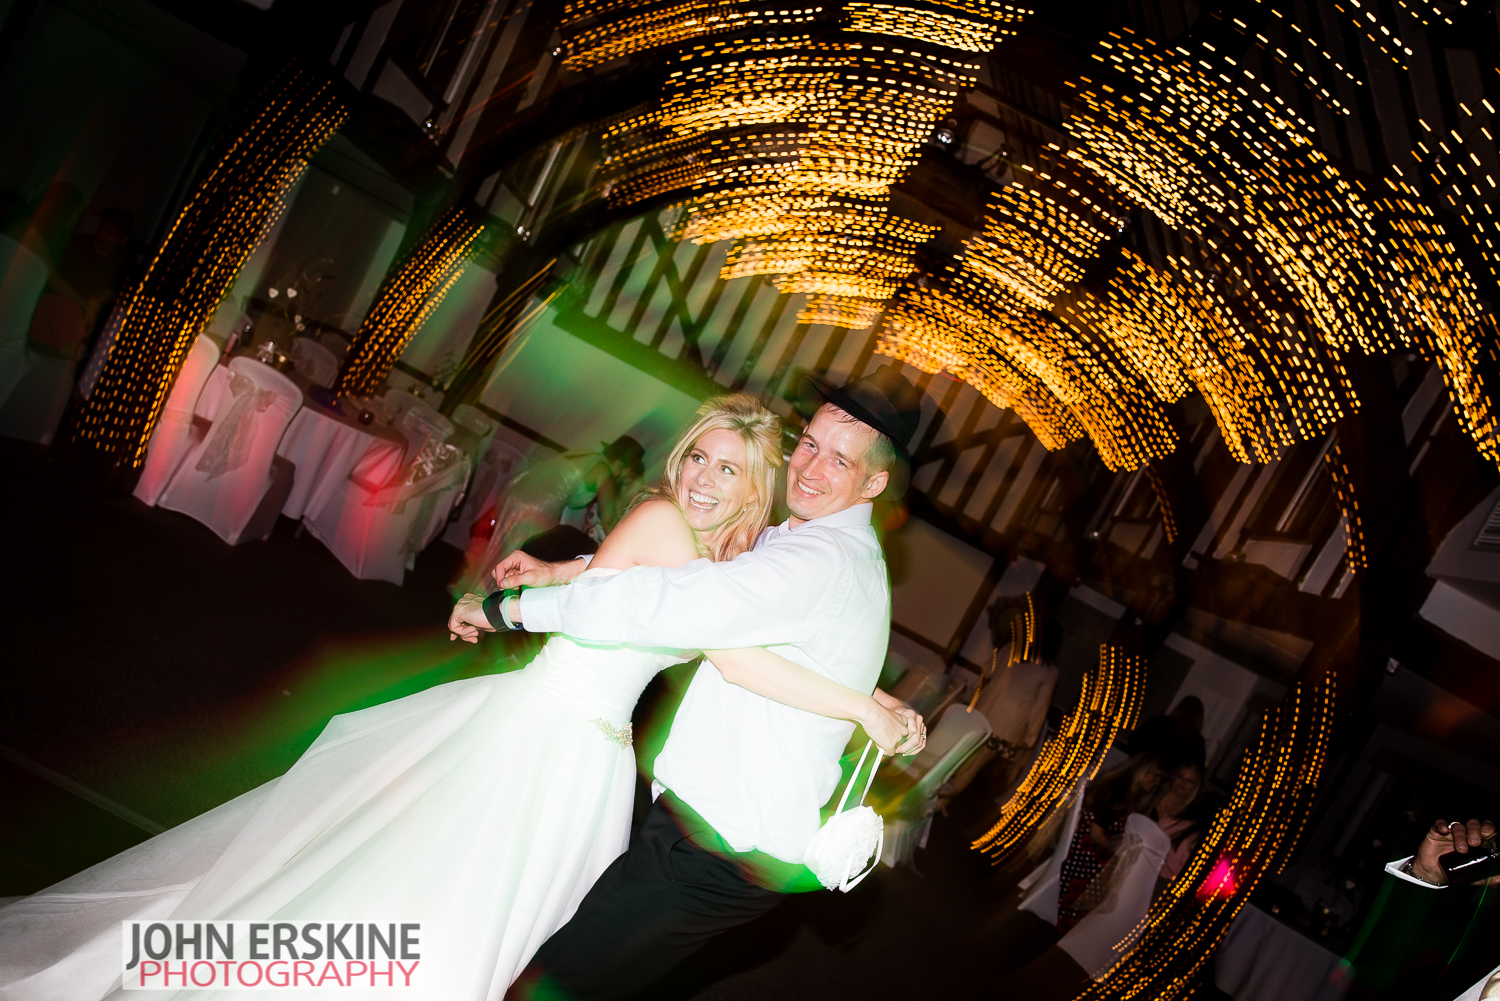 slow shutter photography party dancing